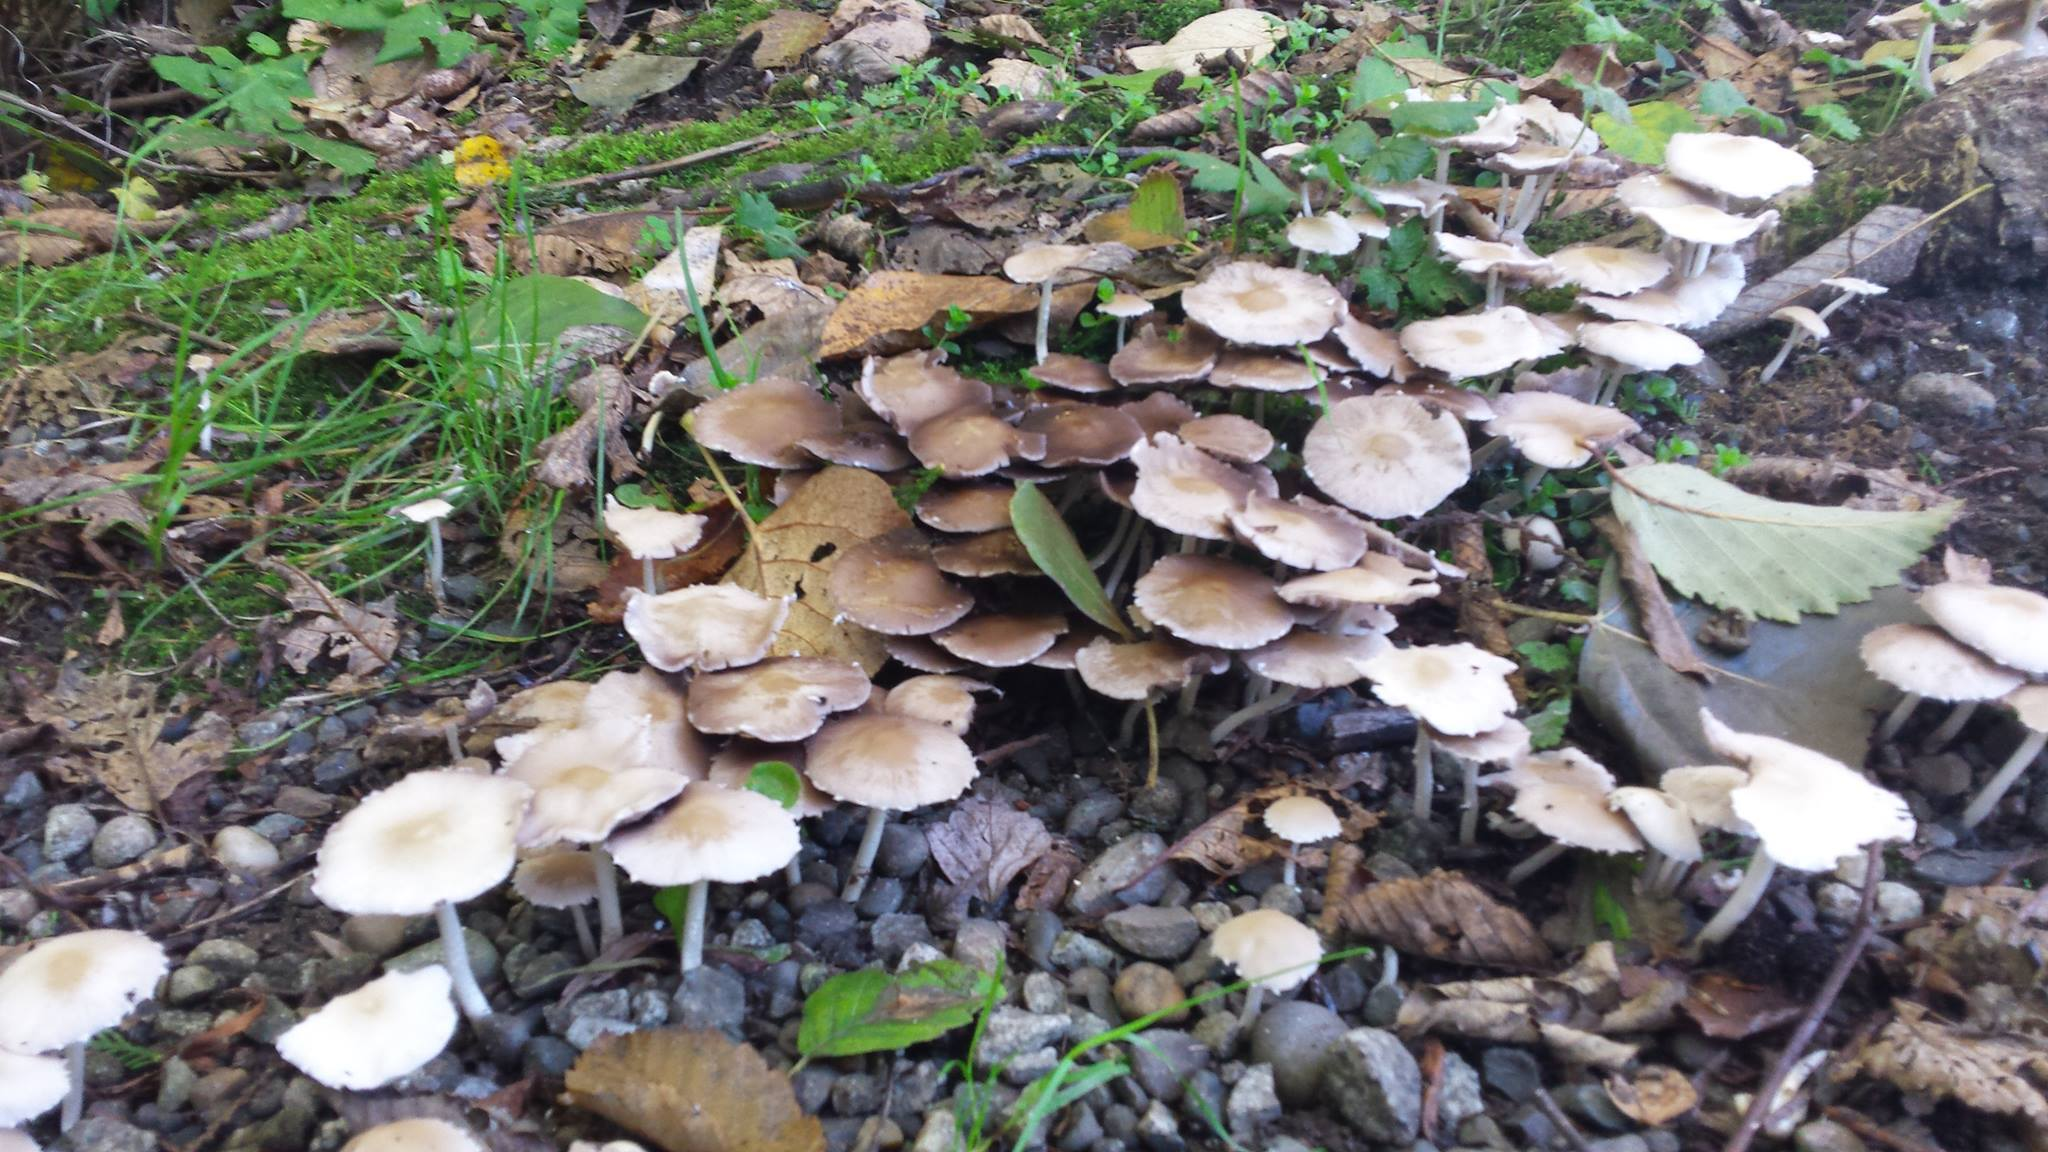 Mushroom growing along the forest floor